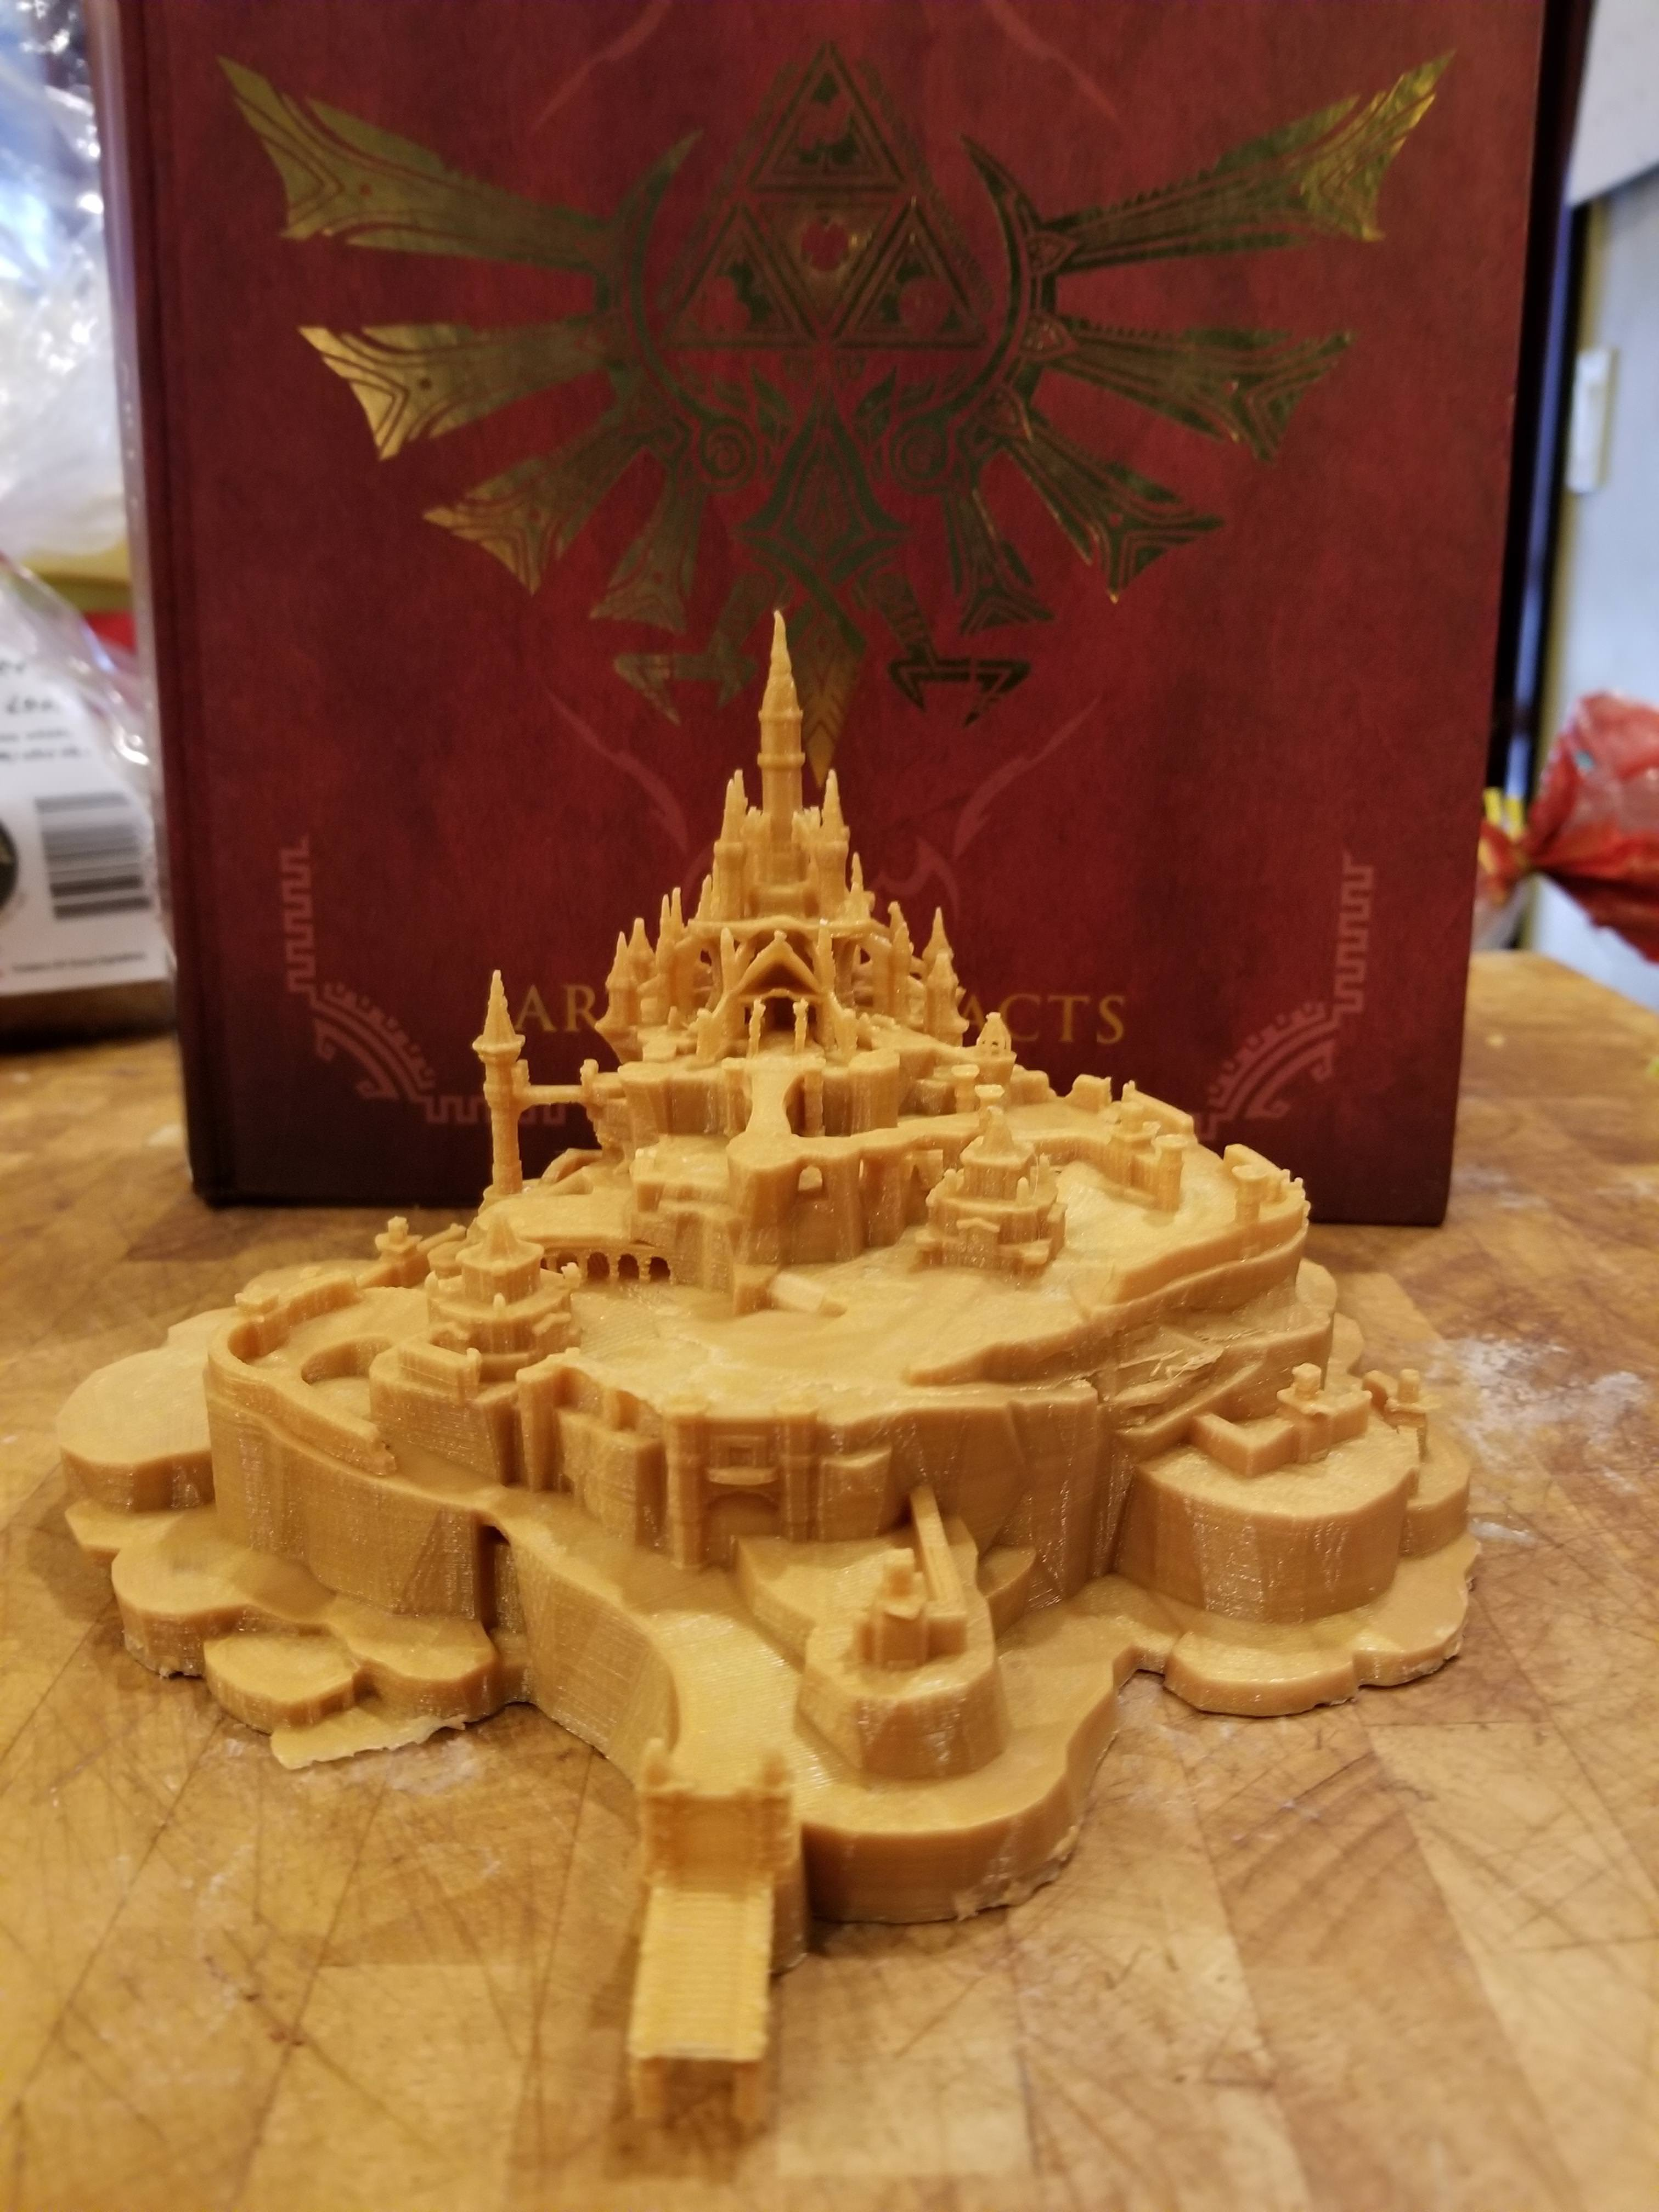 Awesome: Behold This Amazing Zelda: Breath Of The Wild 3D Printed